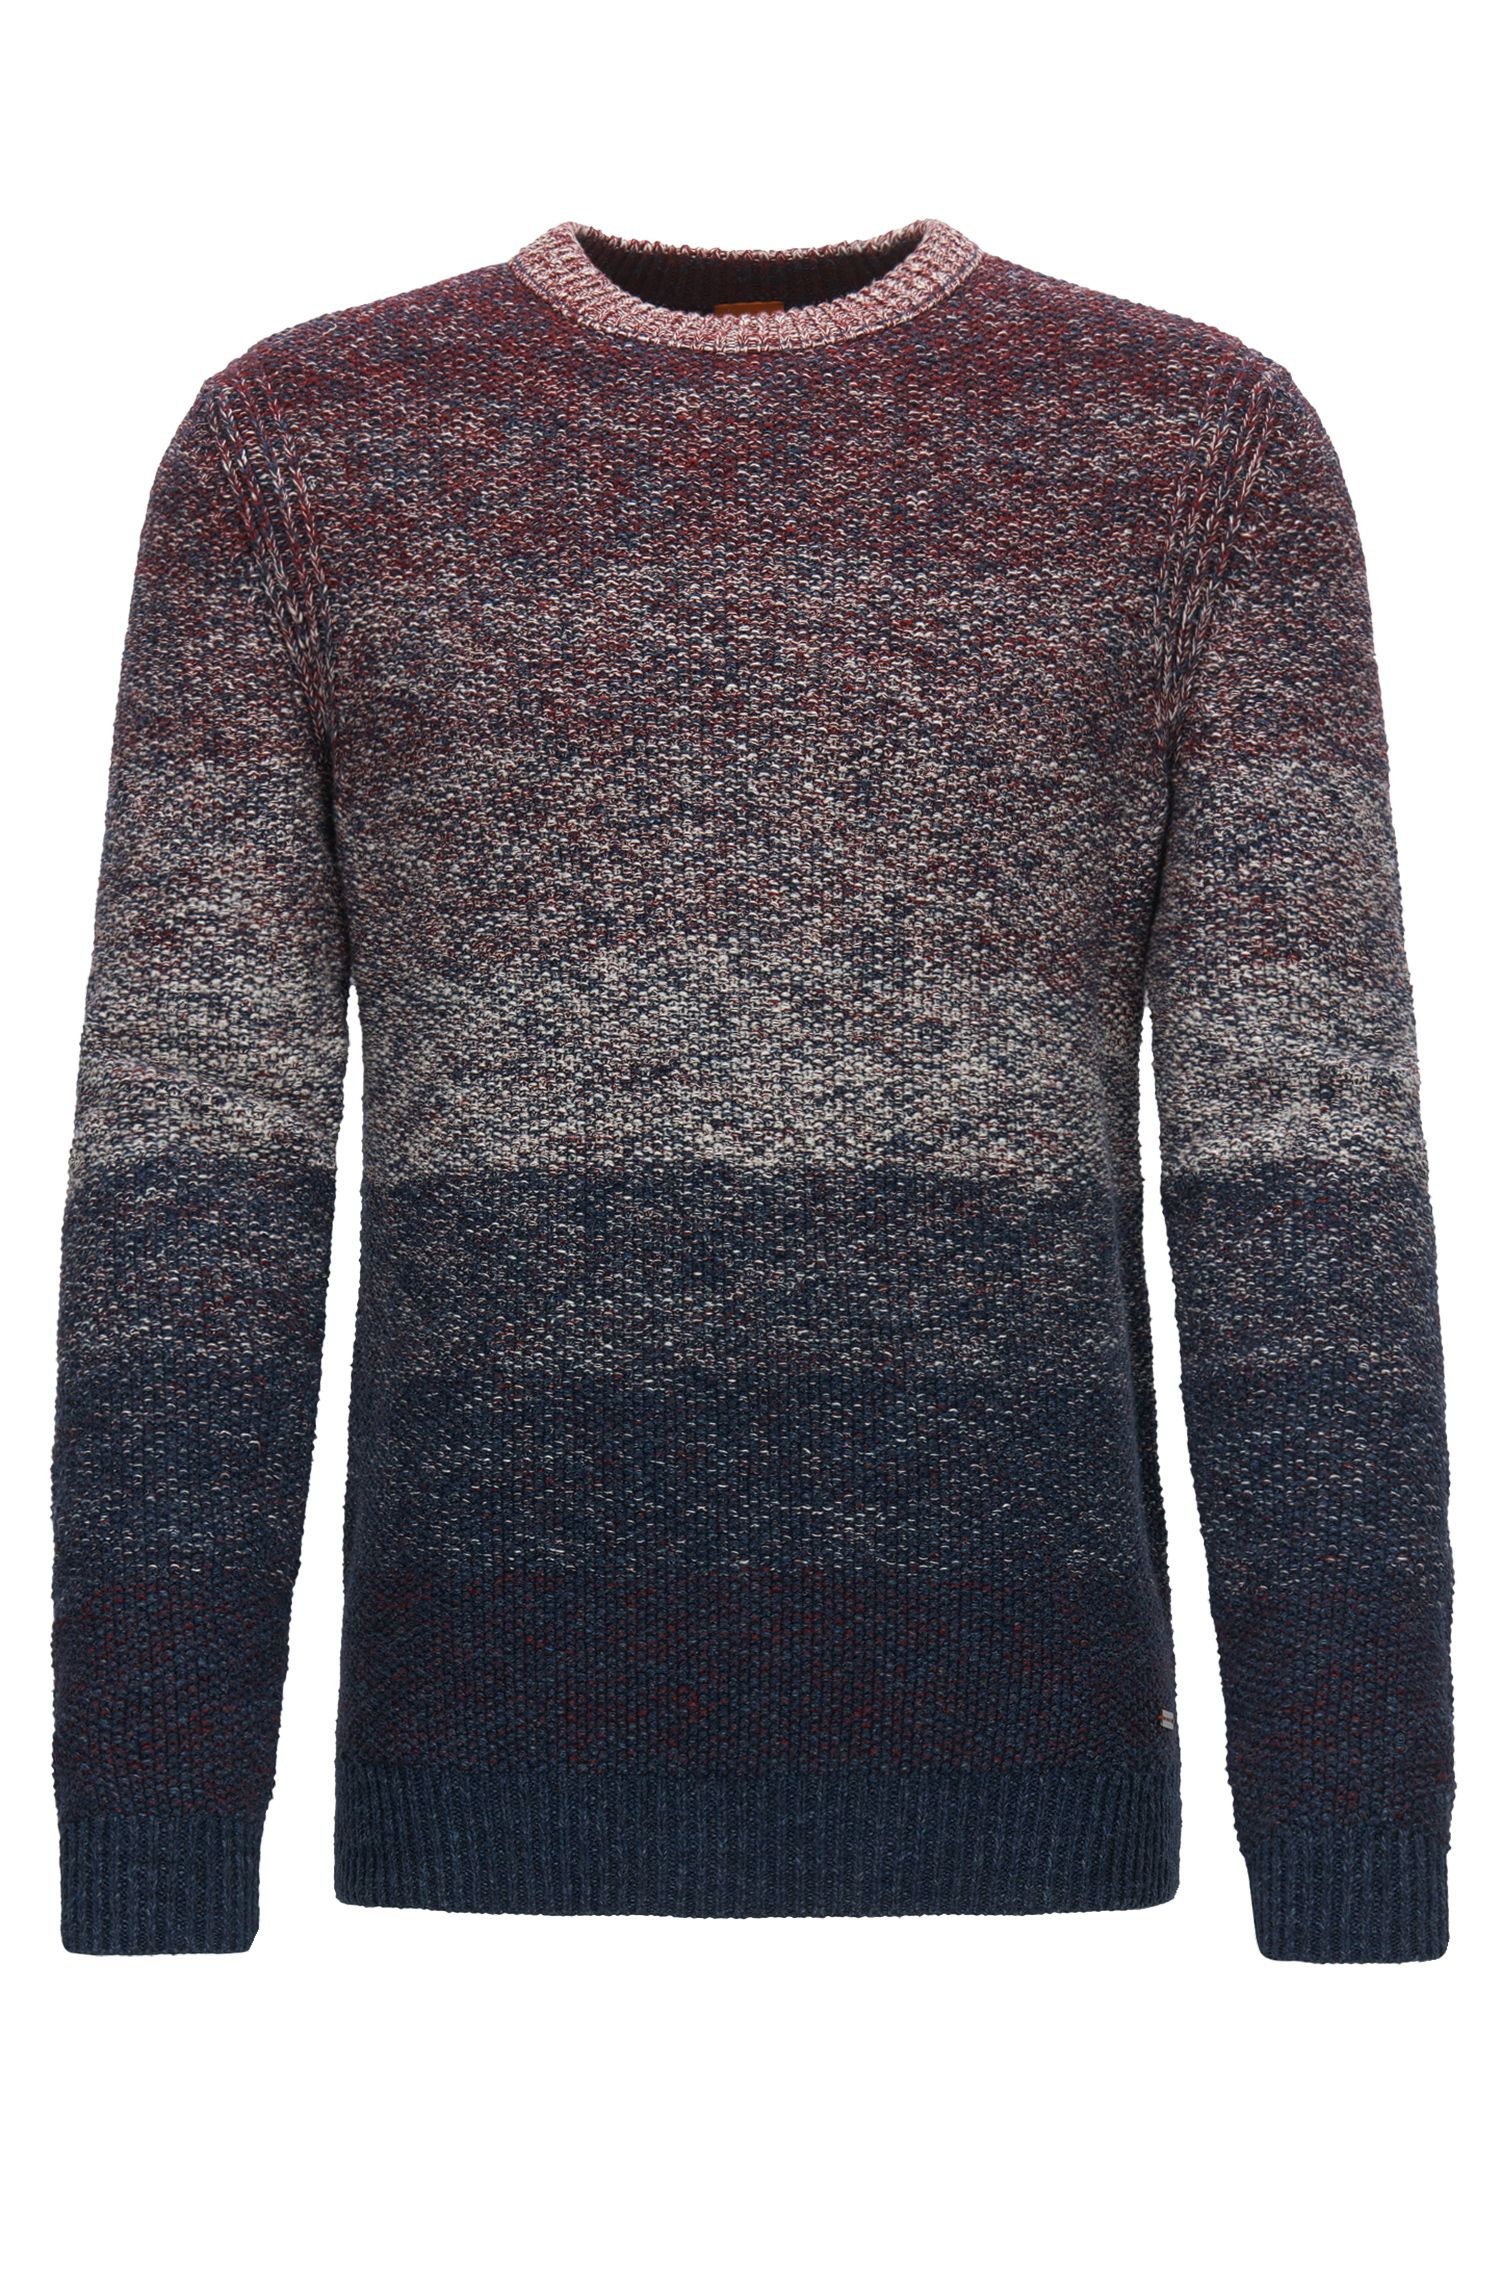 'Arduage' | Gradient Cotton Sweater